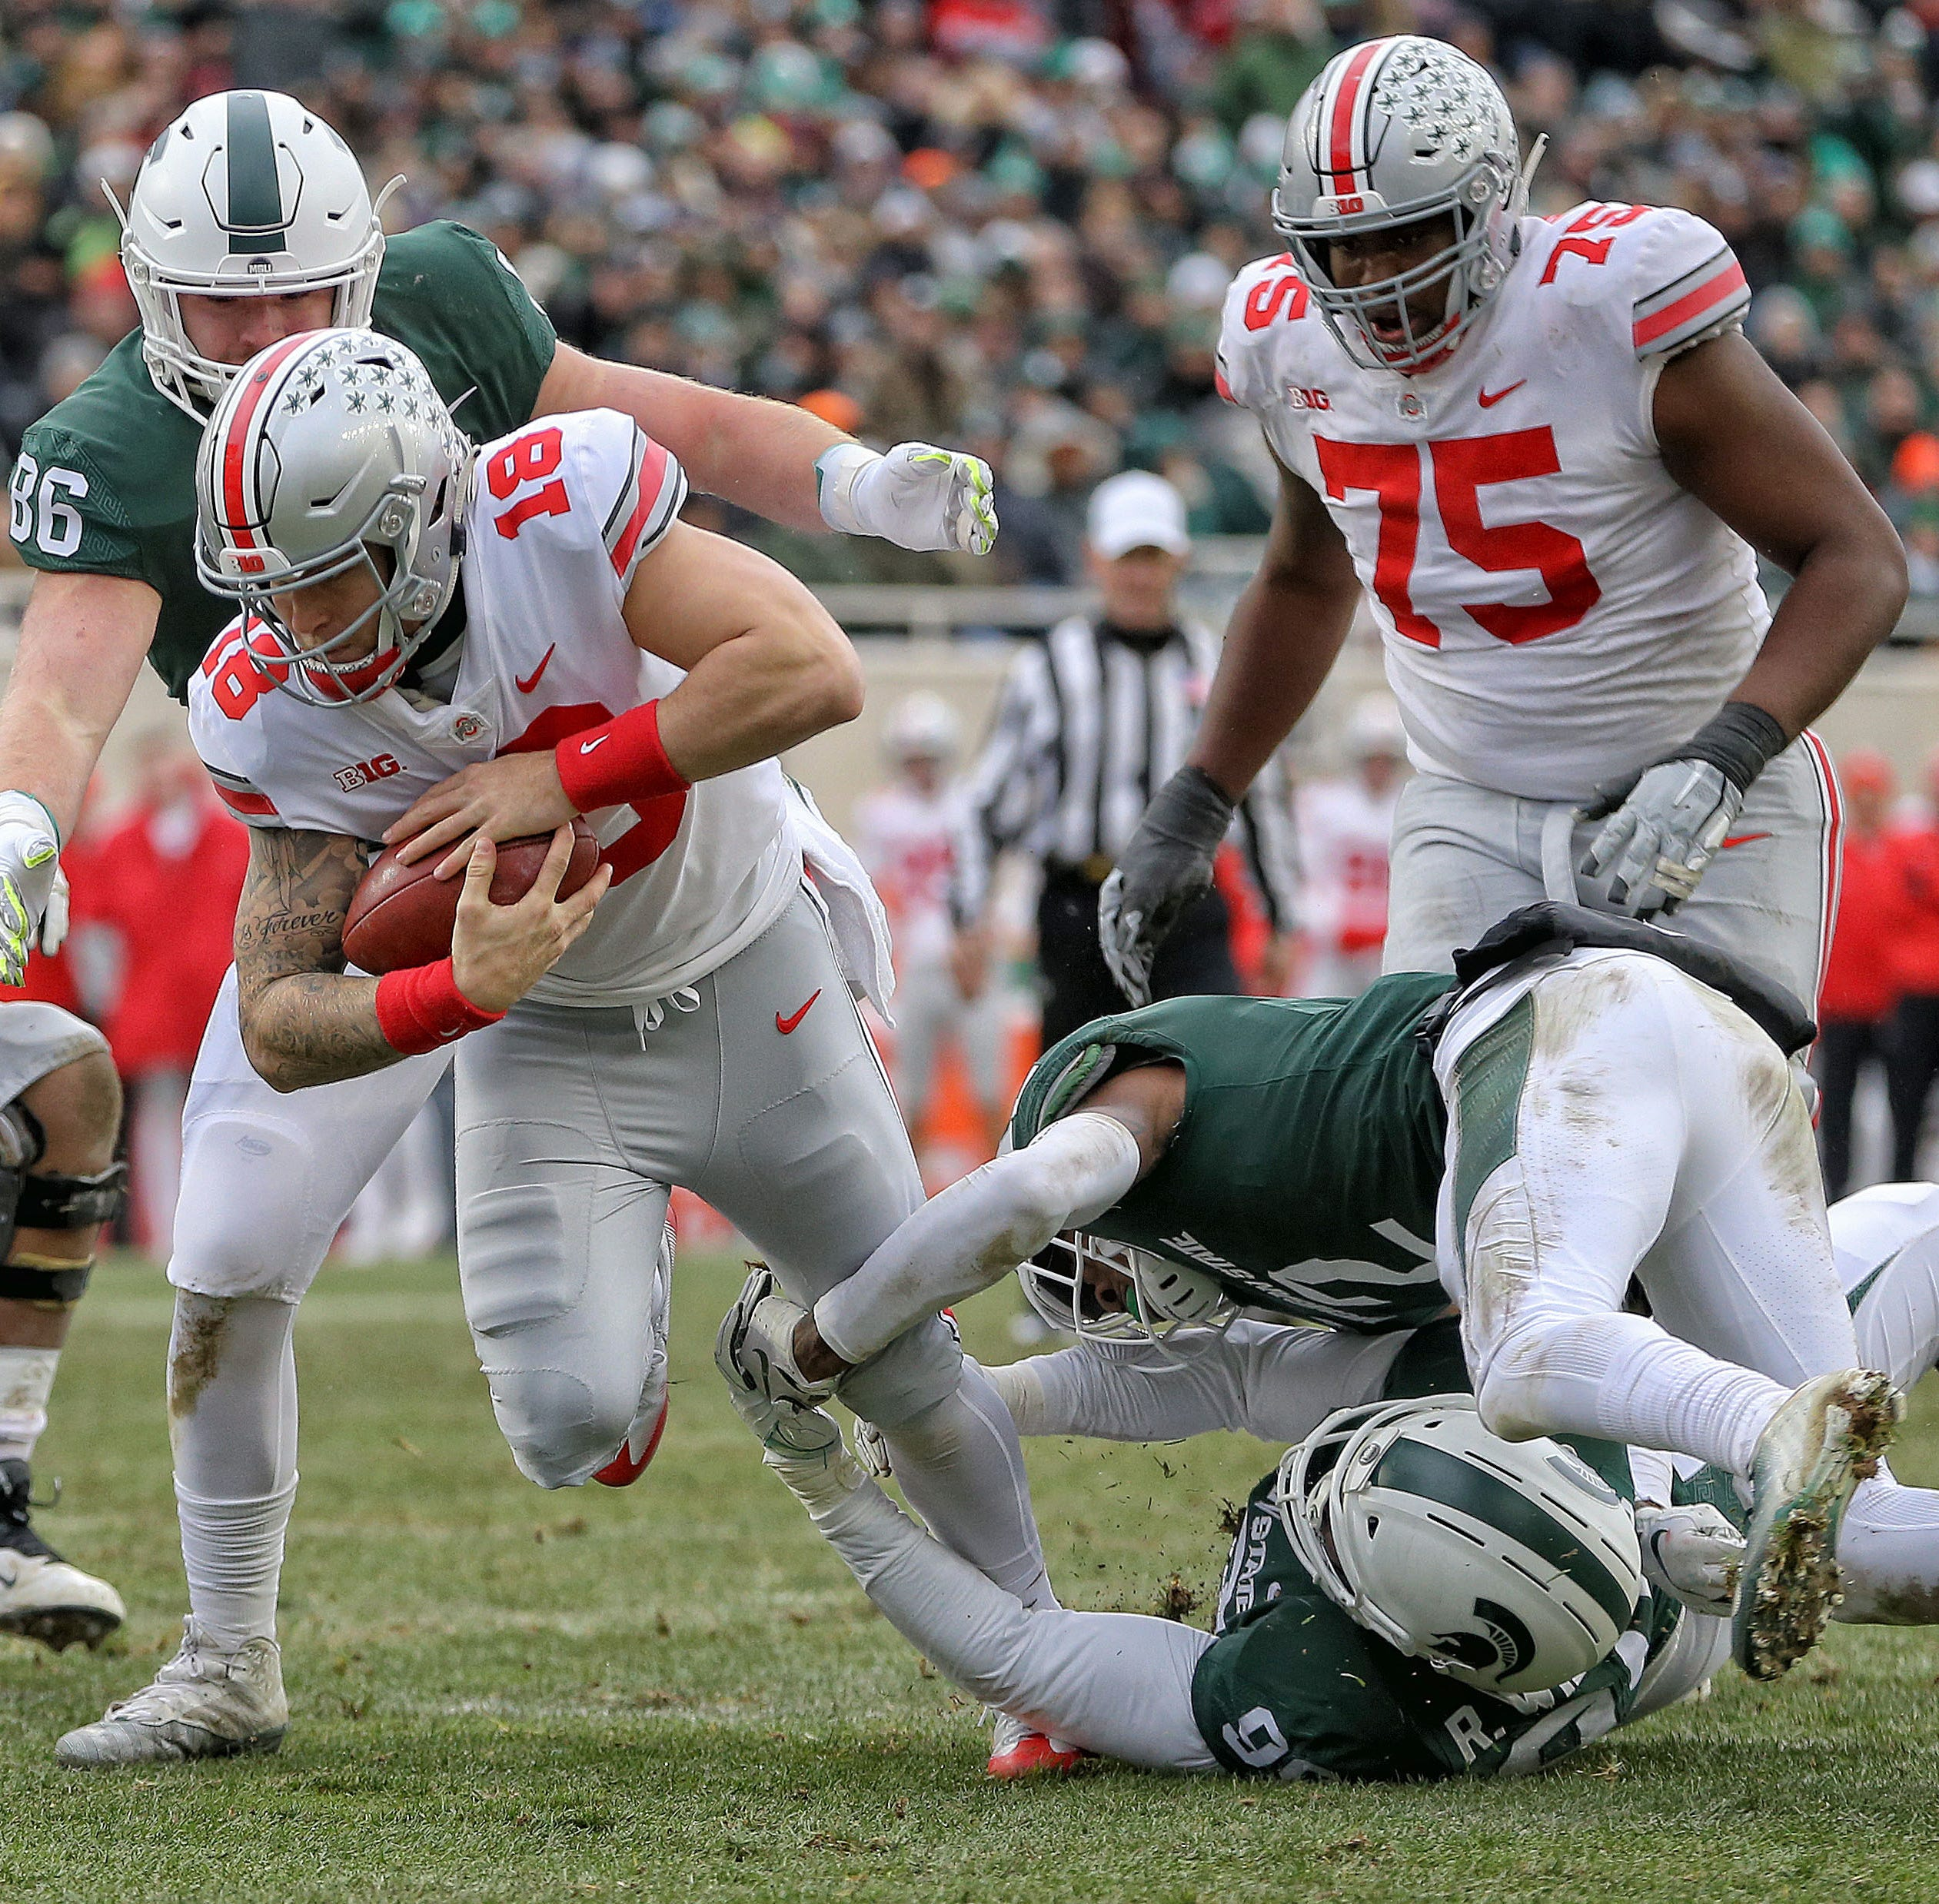 OSU report card: Tough going, but Buckeyes up to the task